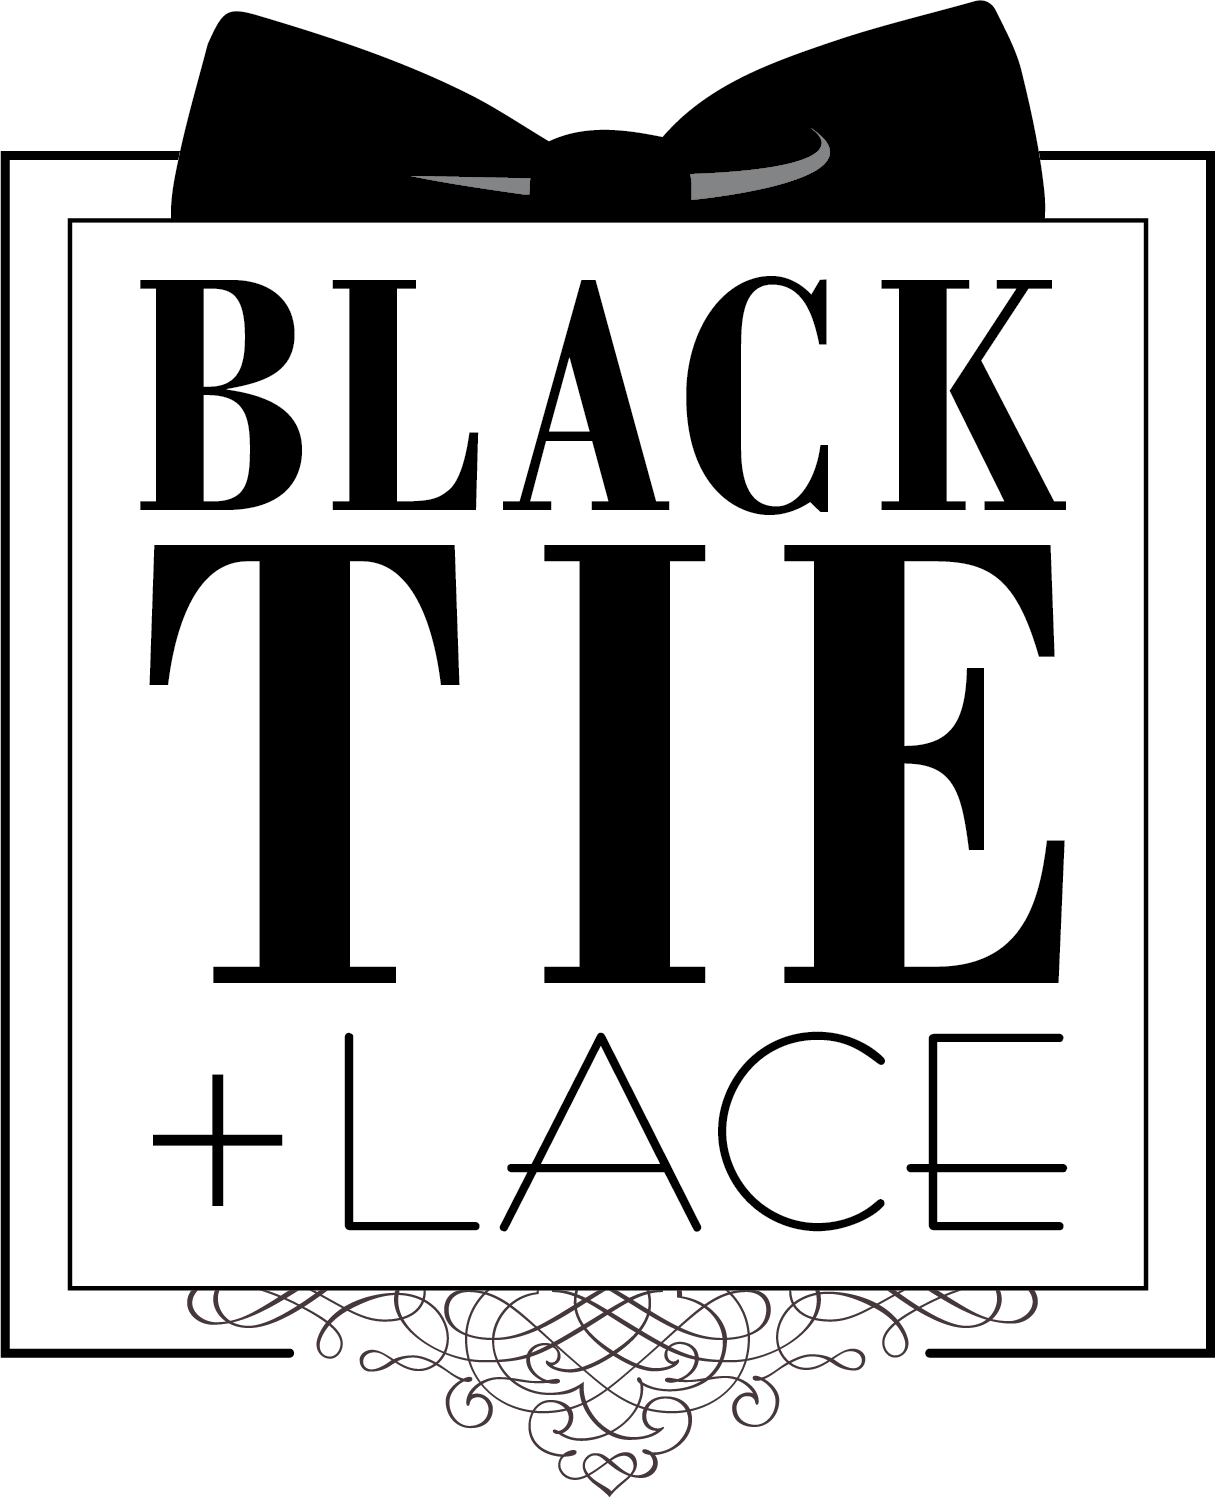 Planner clipart black and white. Blacktie lace